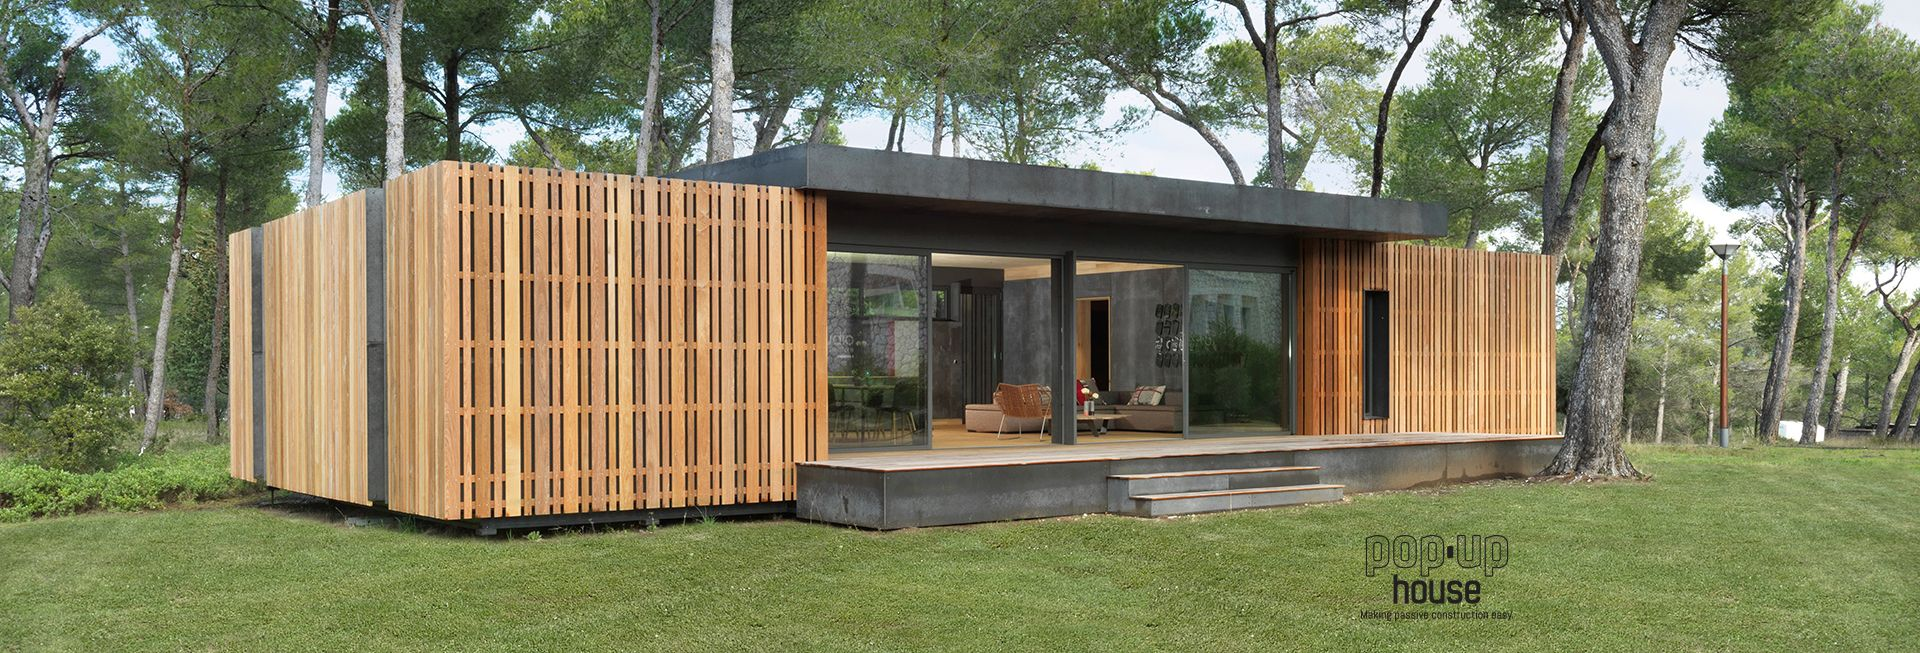 Synergie Home, Rénovation, Isolation Et Construction De Maison PopUp House